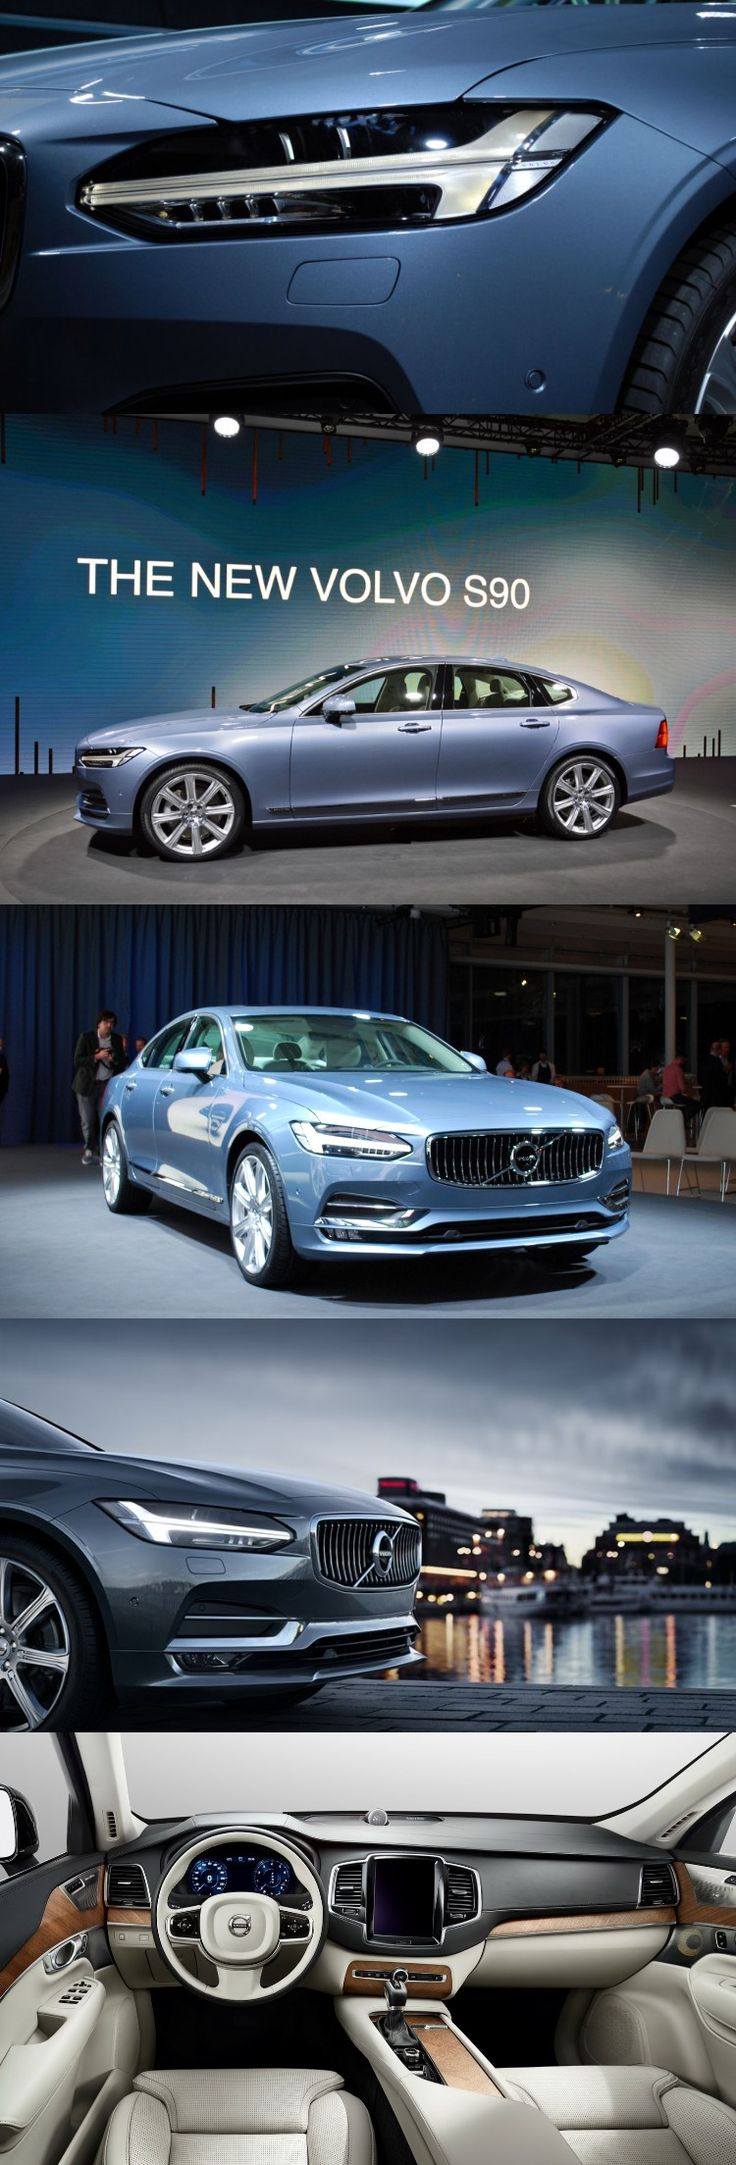 Volvo S90 Launched in India at INR 53.5 Lakhs